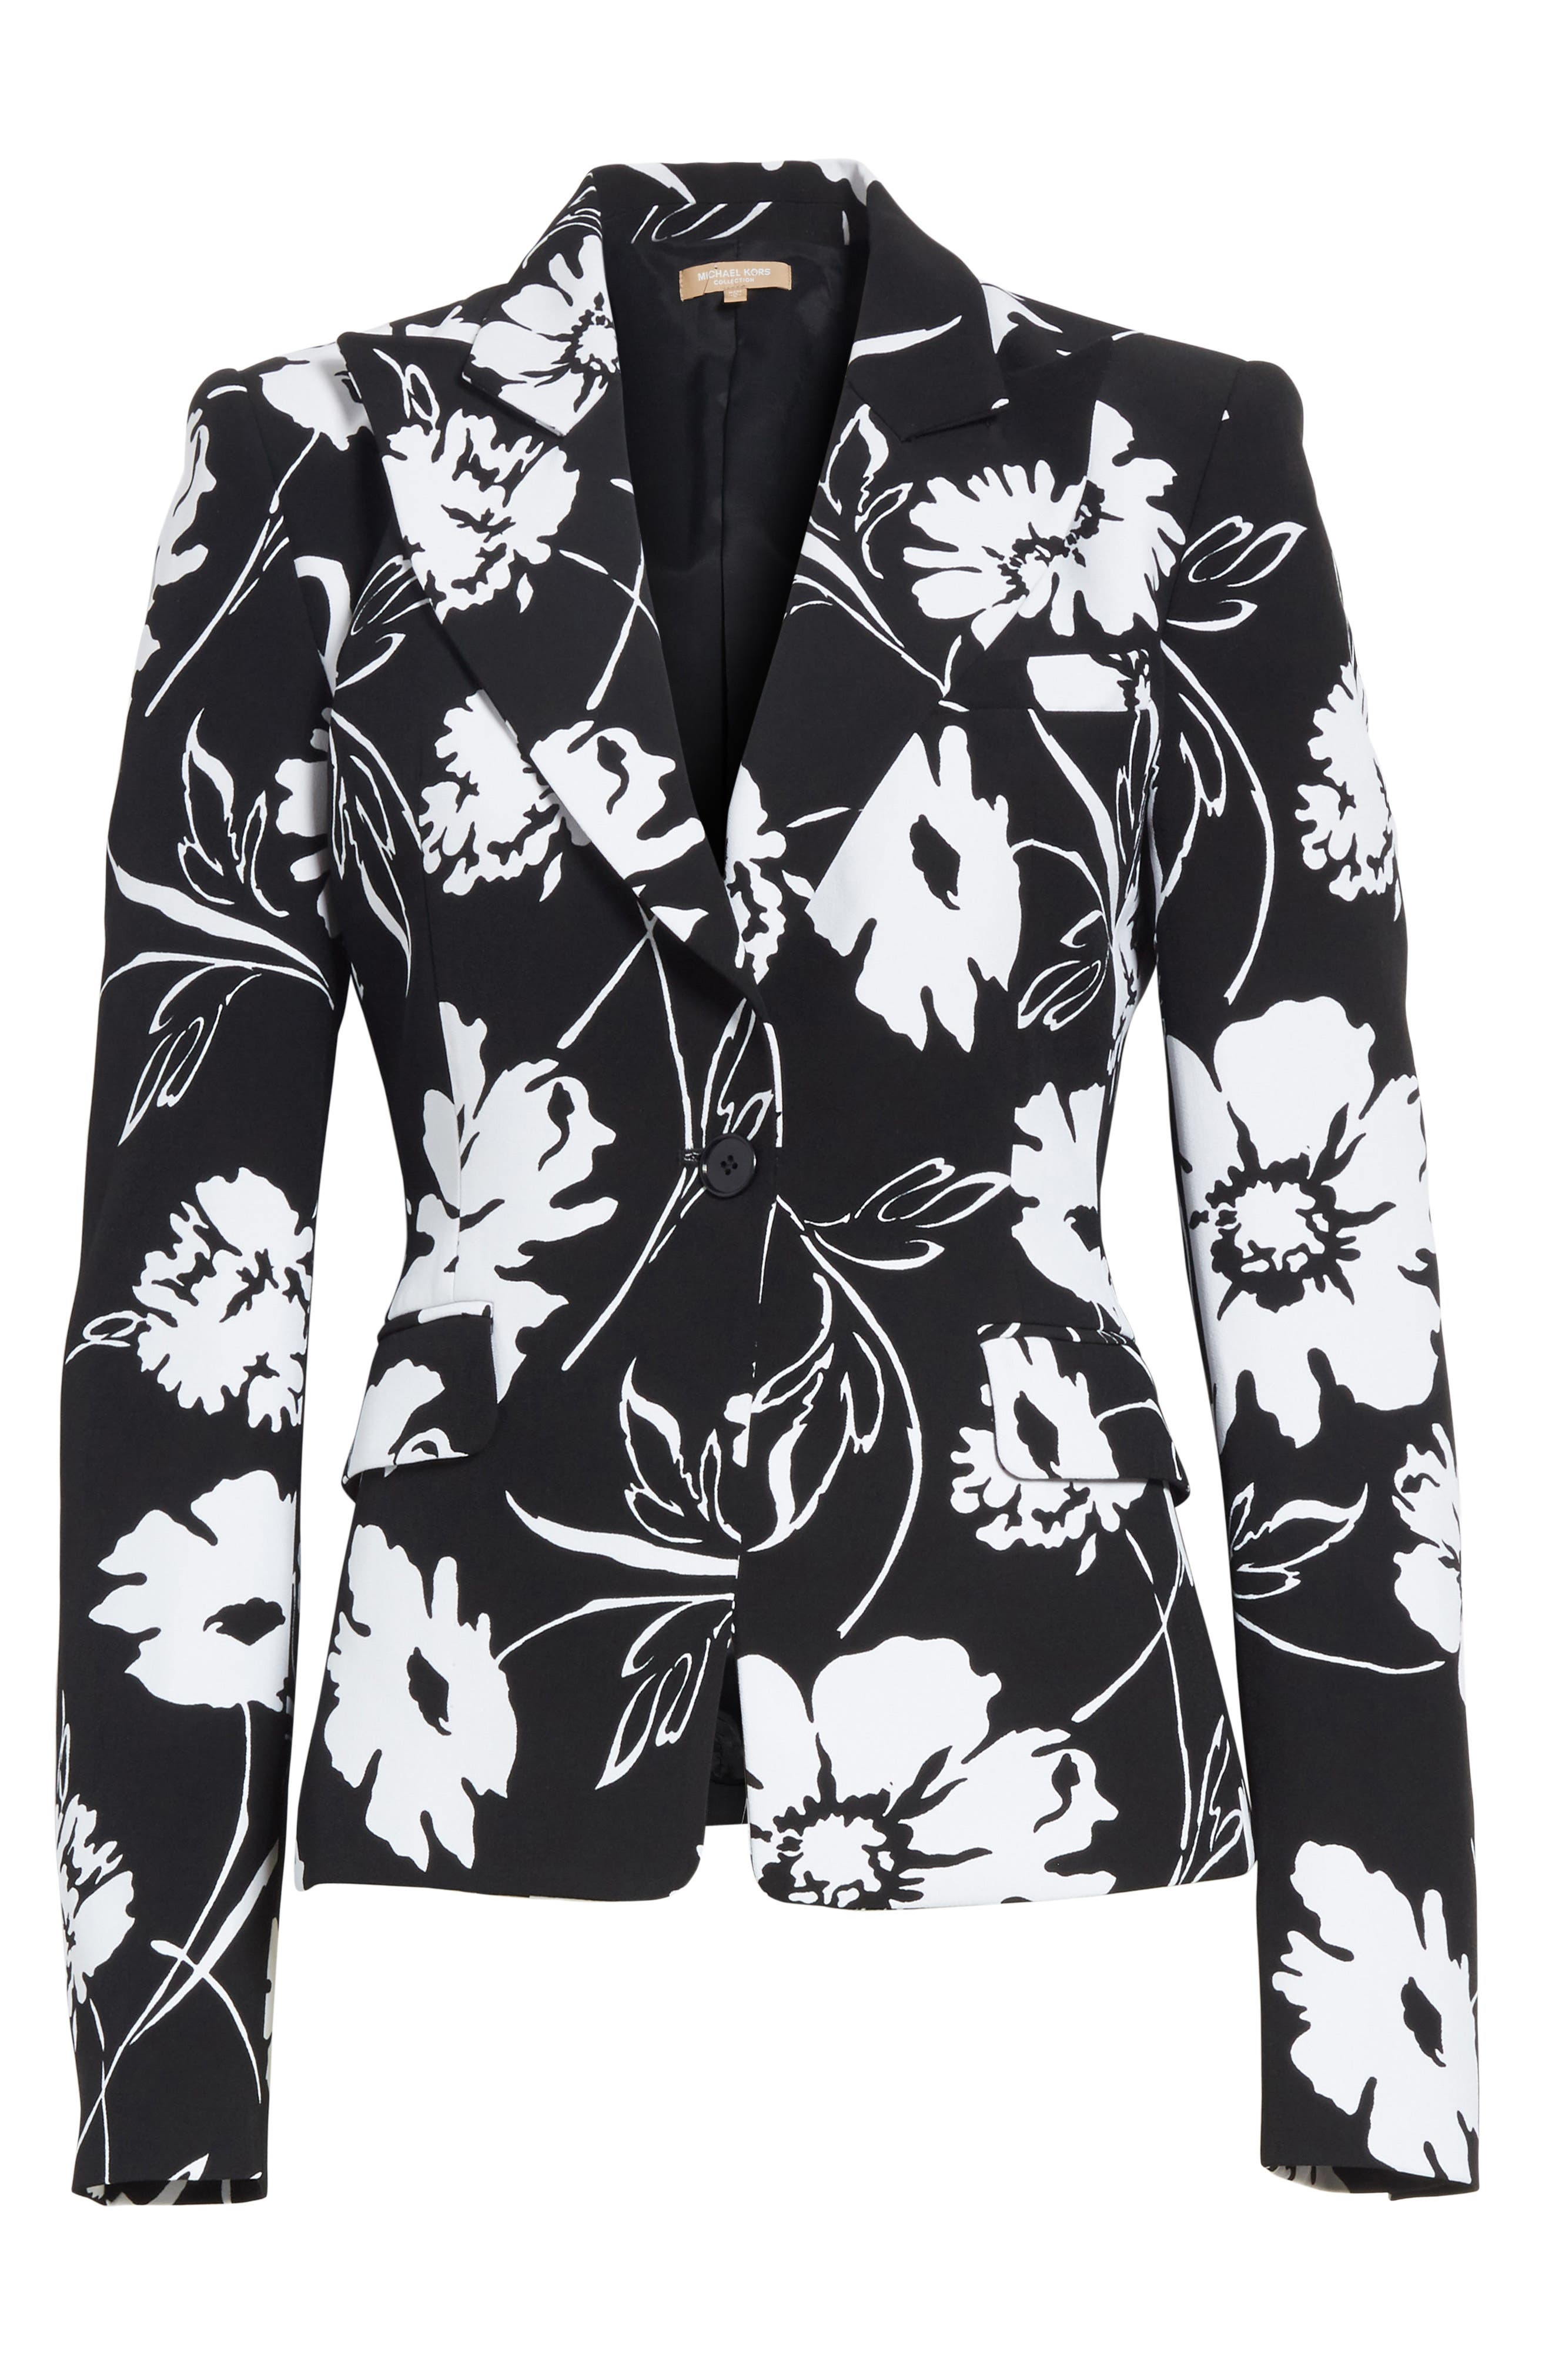 Floral Print Blazer,                             Alternate thumbnail 6, color,                             Black / White